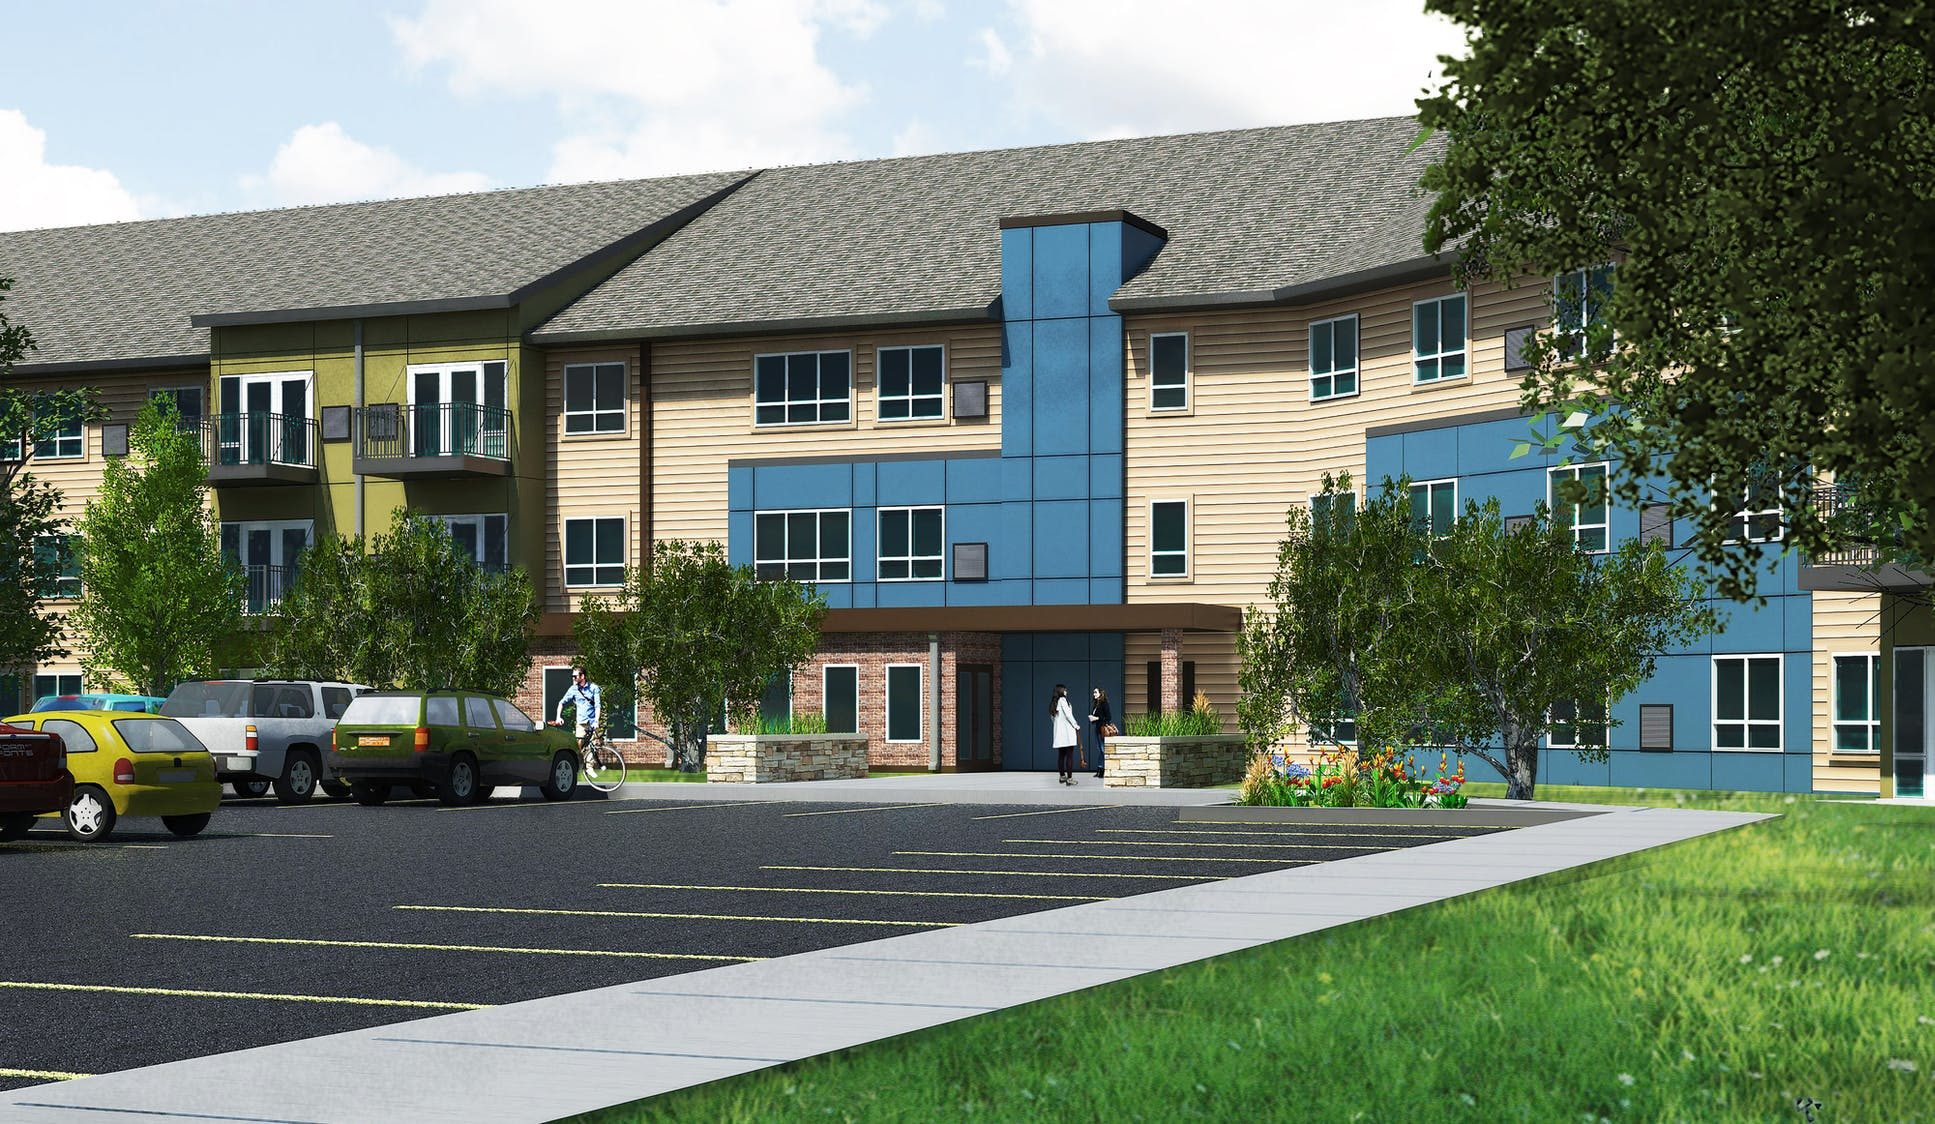 East Side Apartments to bring more affordable housing to Dayton's Bluff